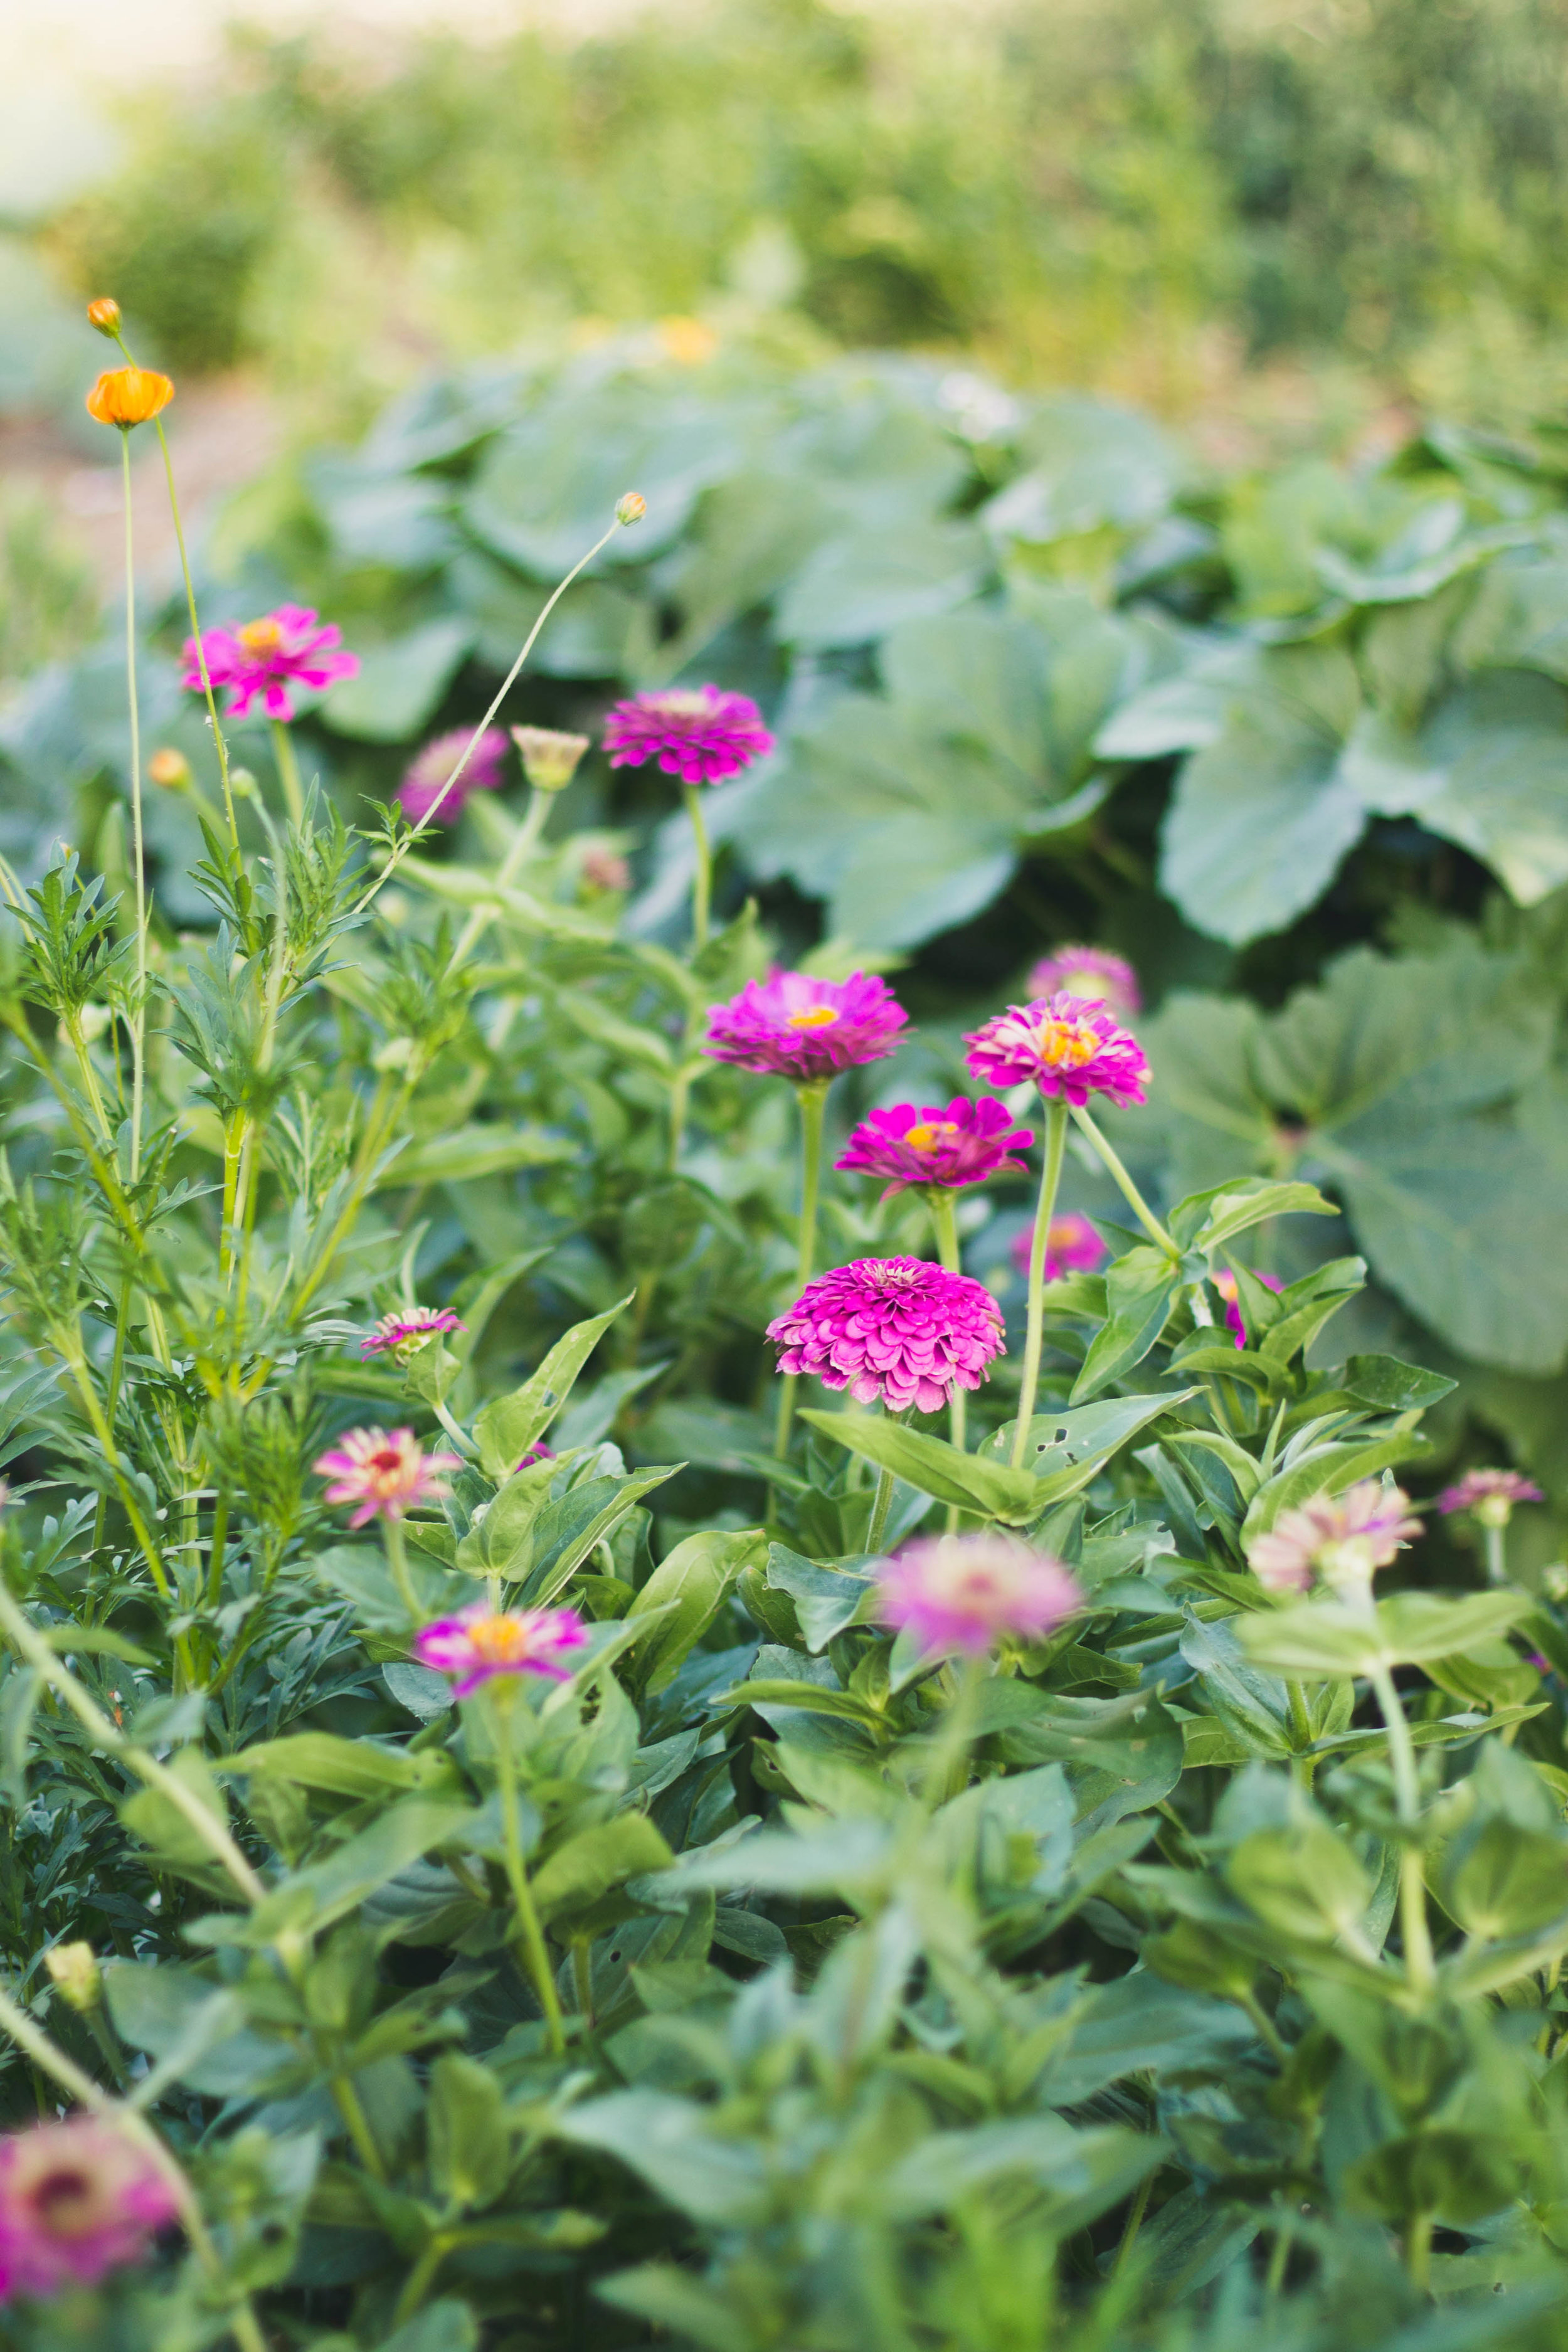 who doesn't love zinnias? & that's okra in the background.